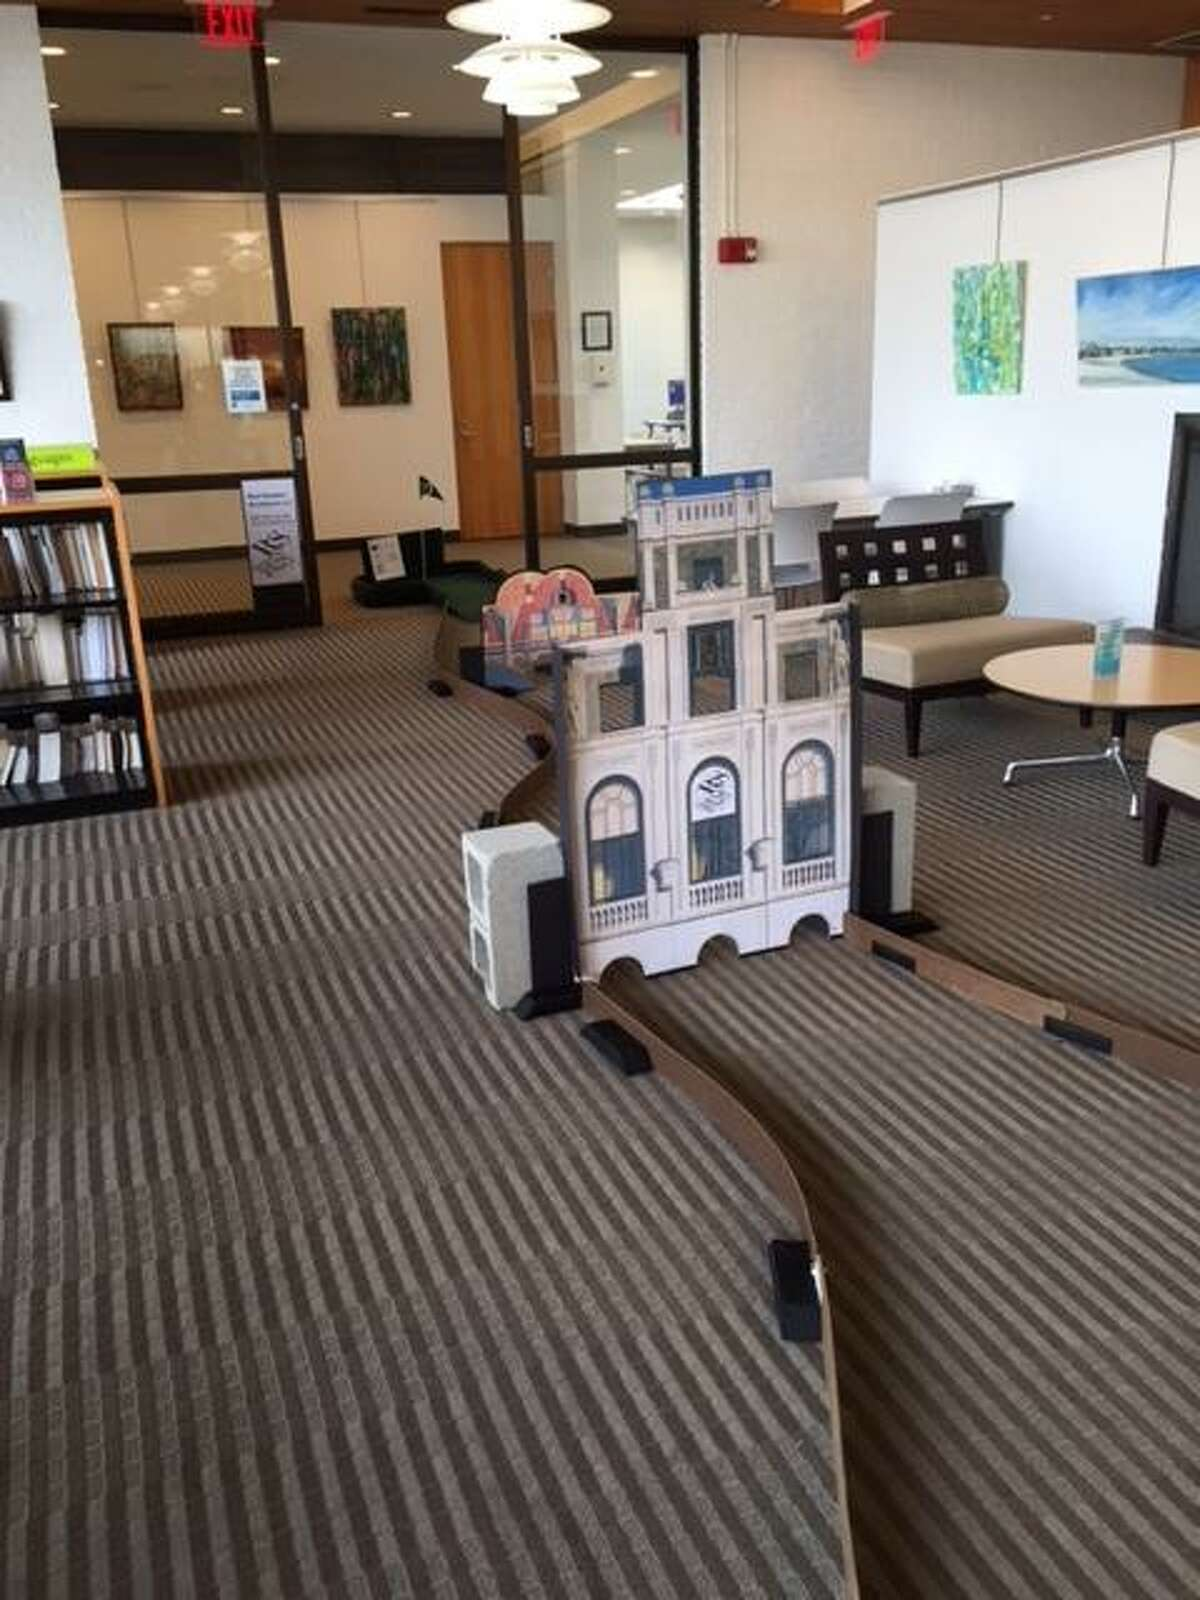 The Stratford Library Board of Trustees will be staging a fundraiser on Friday and Saturday, Nov. 9 and 10, when the library will be transformed into a golf course in miniature.